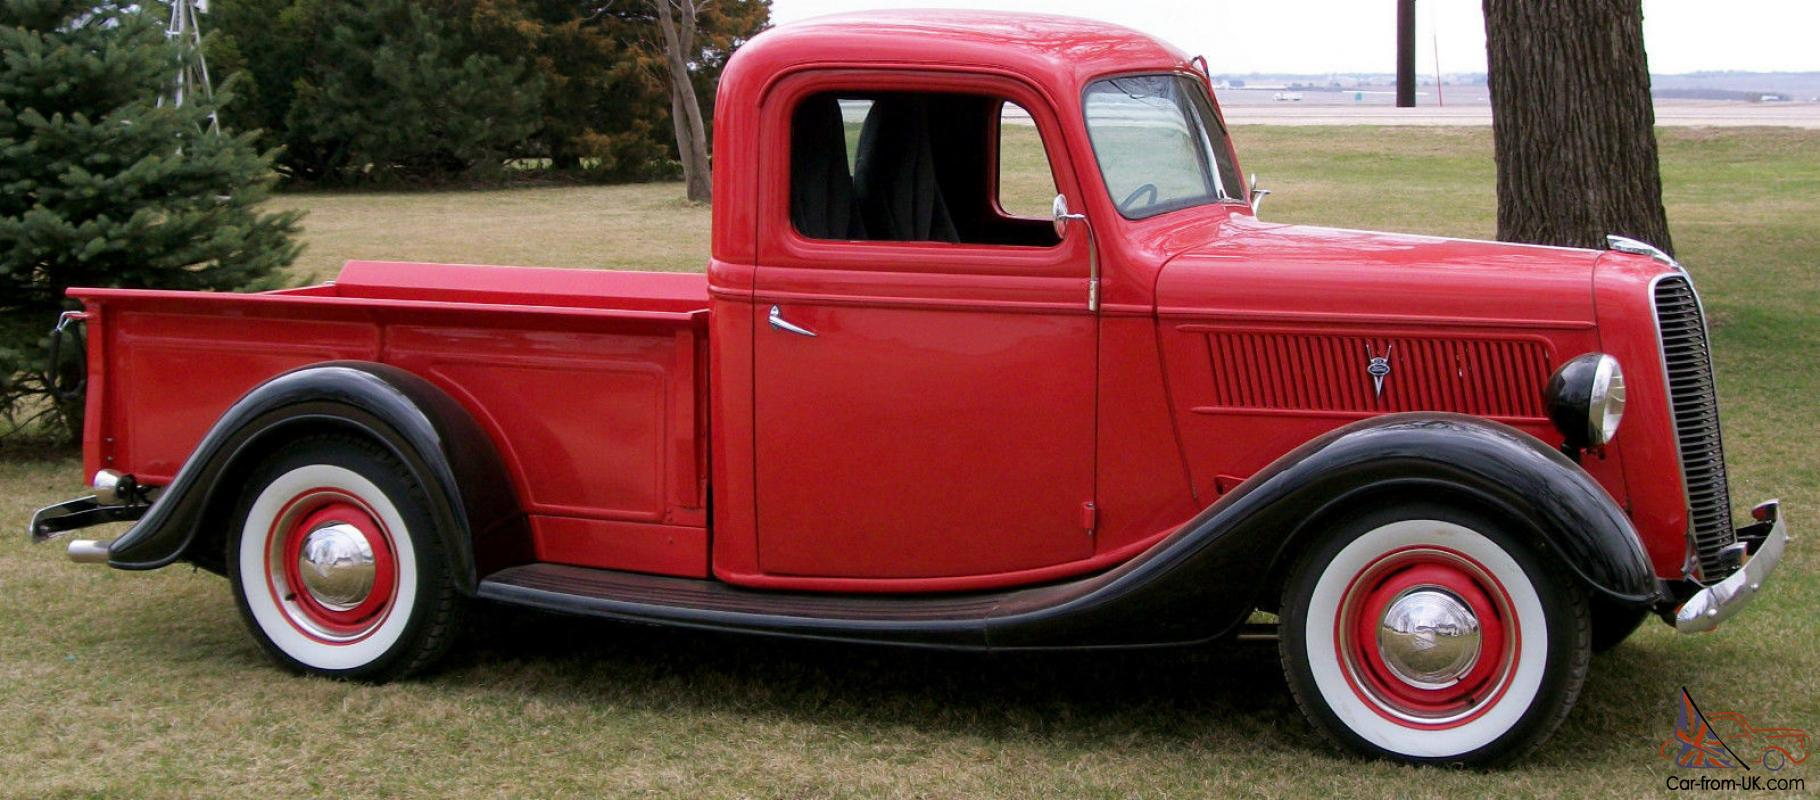 1937 Ford Pickup, Trophy winning Wolf in Sheep's Clothing, 5.2Ltr, 5-Spd  Tremec